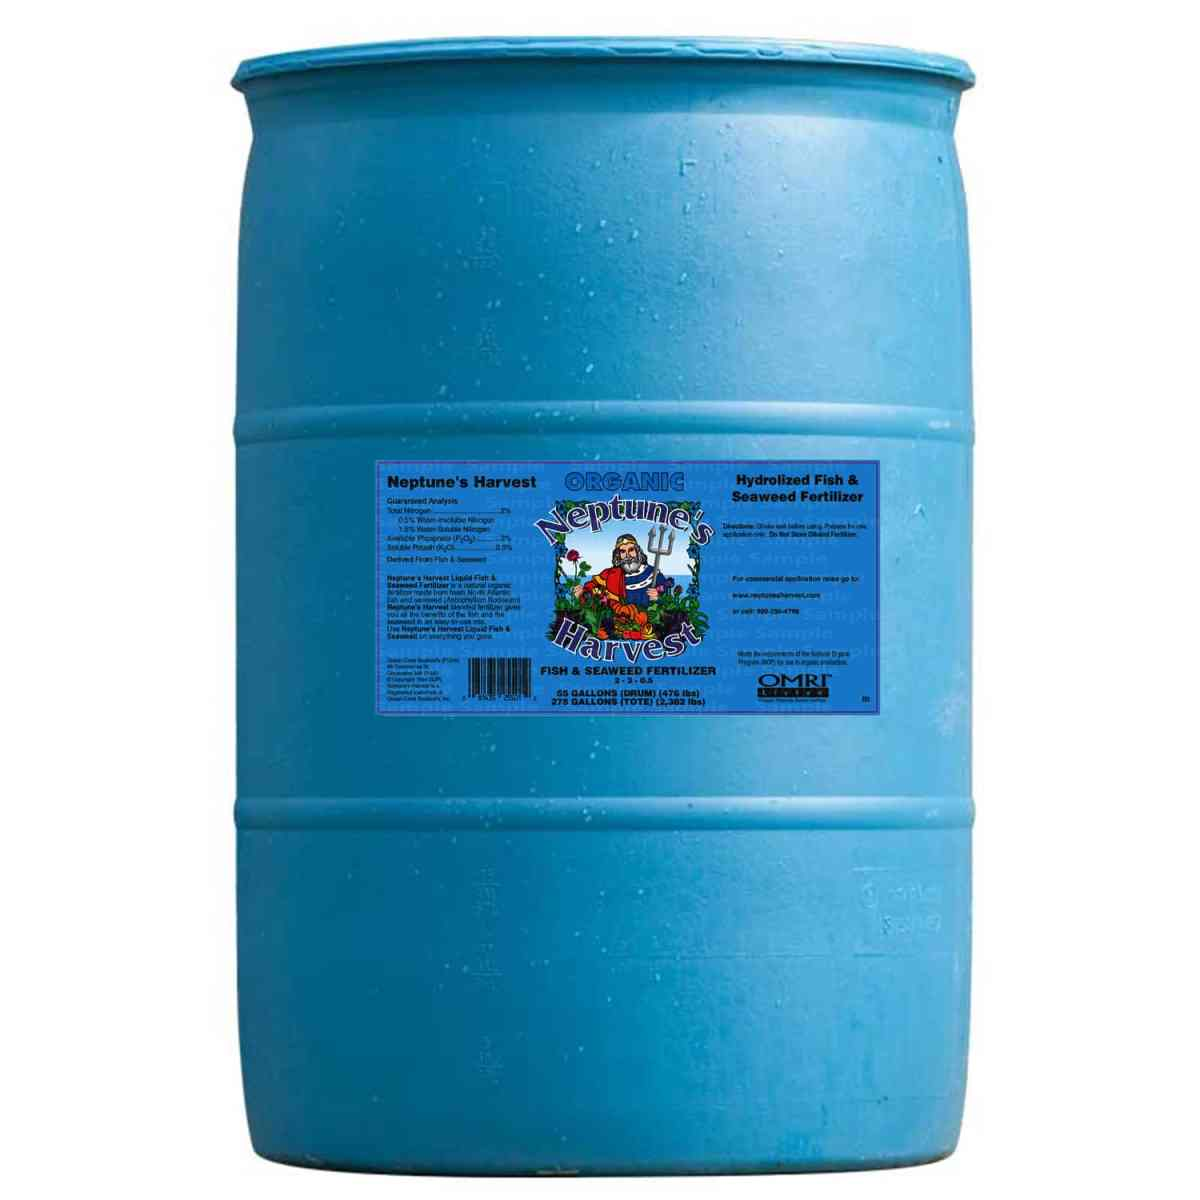 55 gallon barrel fish seaweed fertilizer